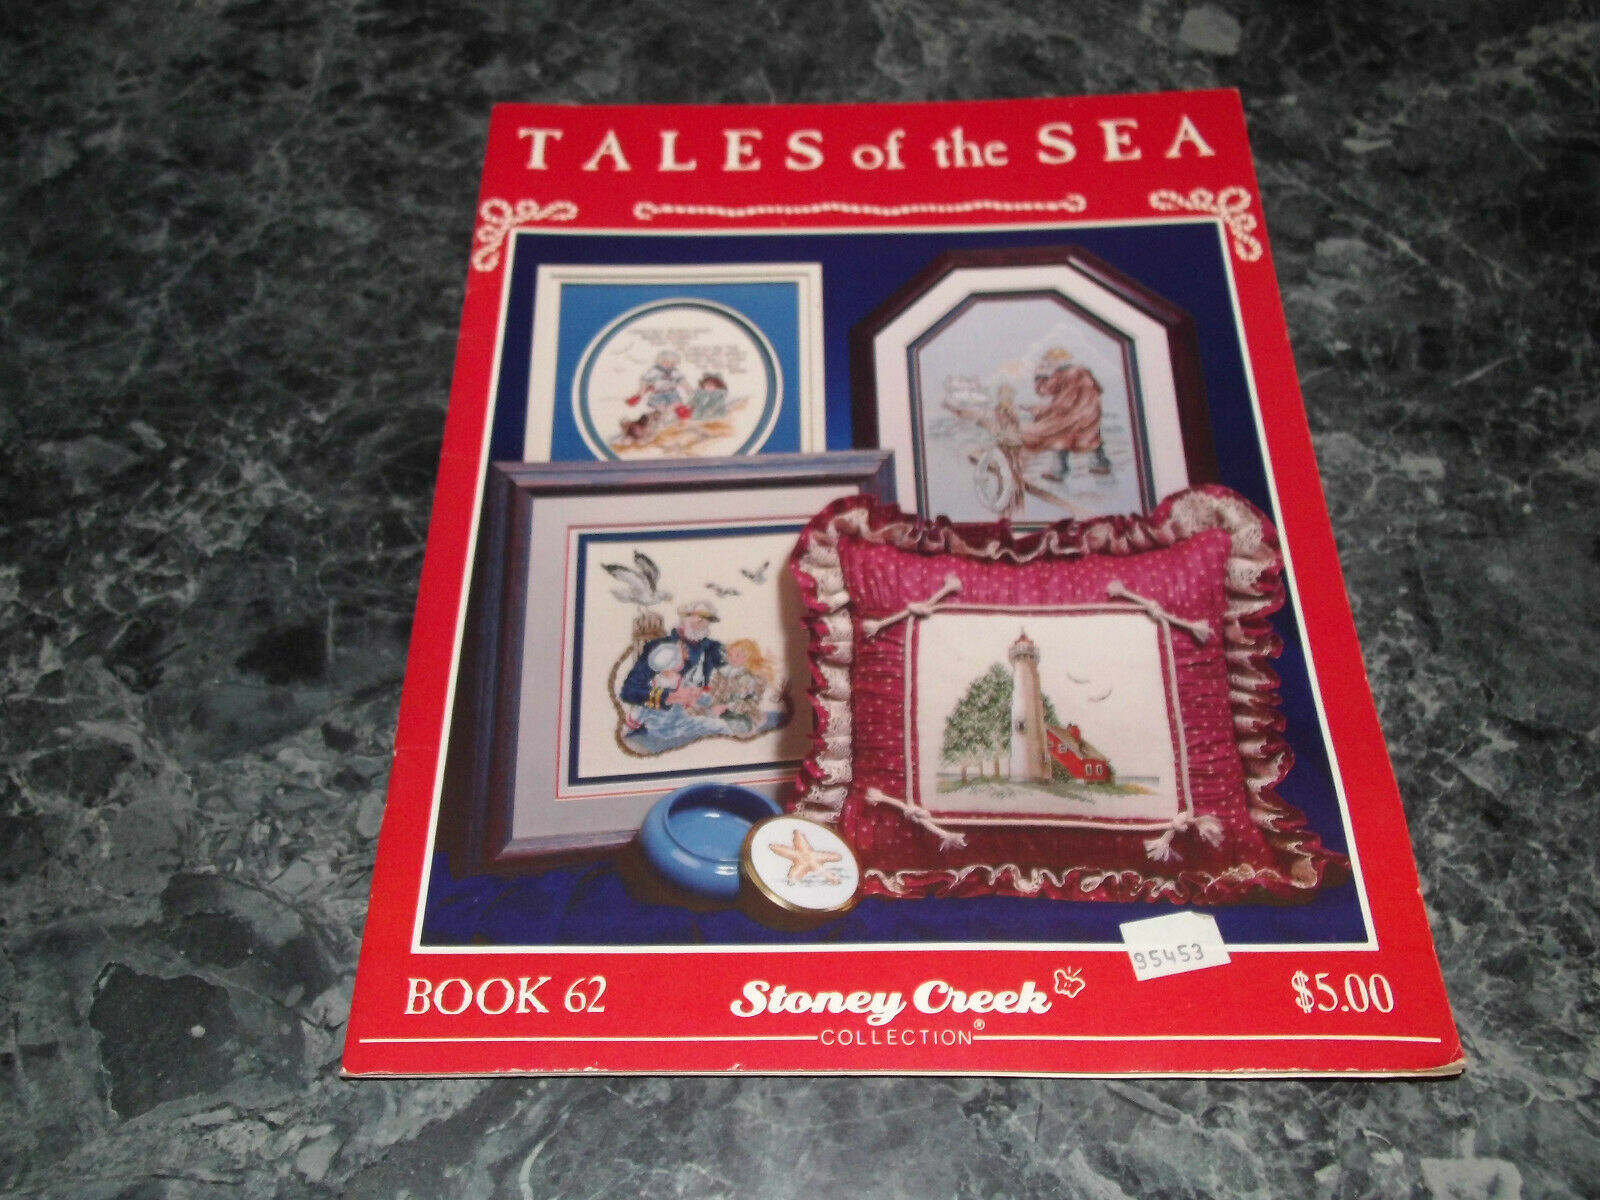 Tales of the Sea Stoney Creek Collection Book 62 needle craft